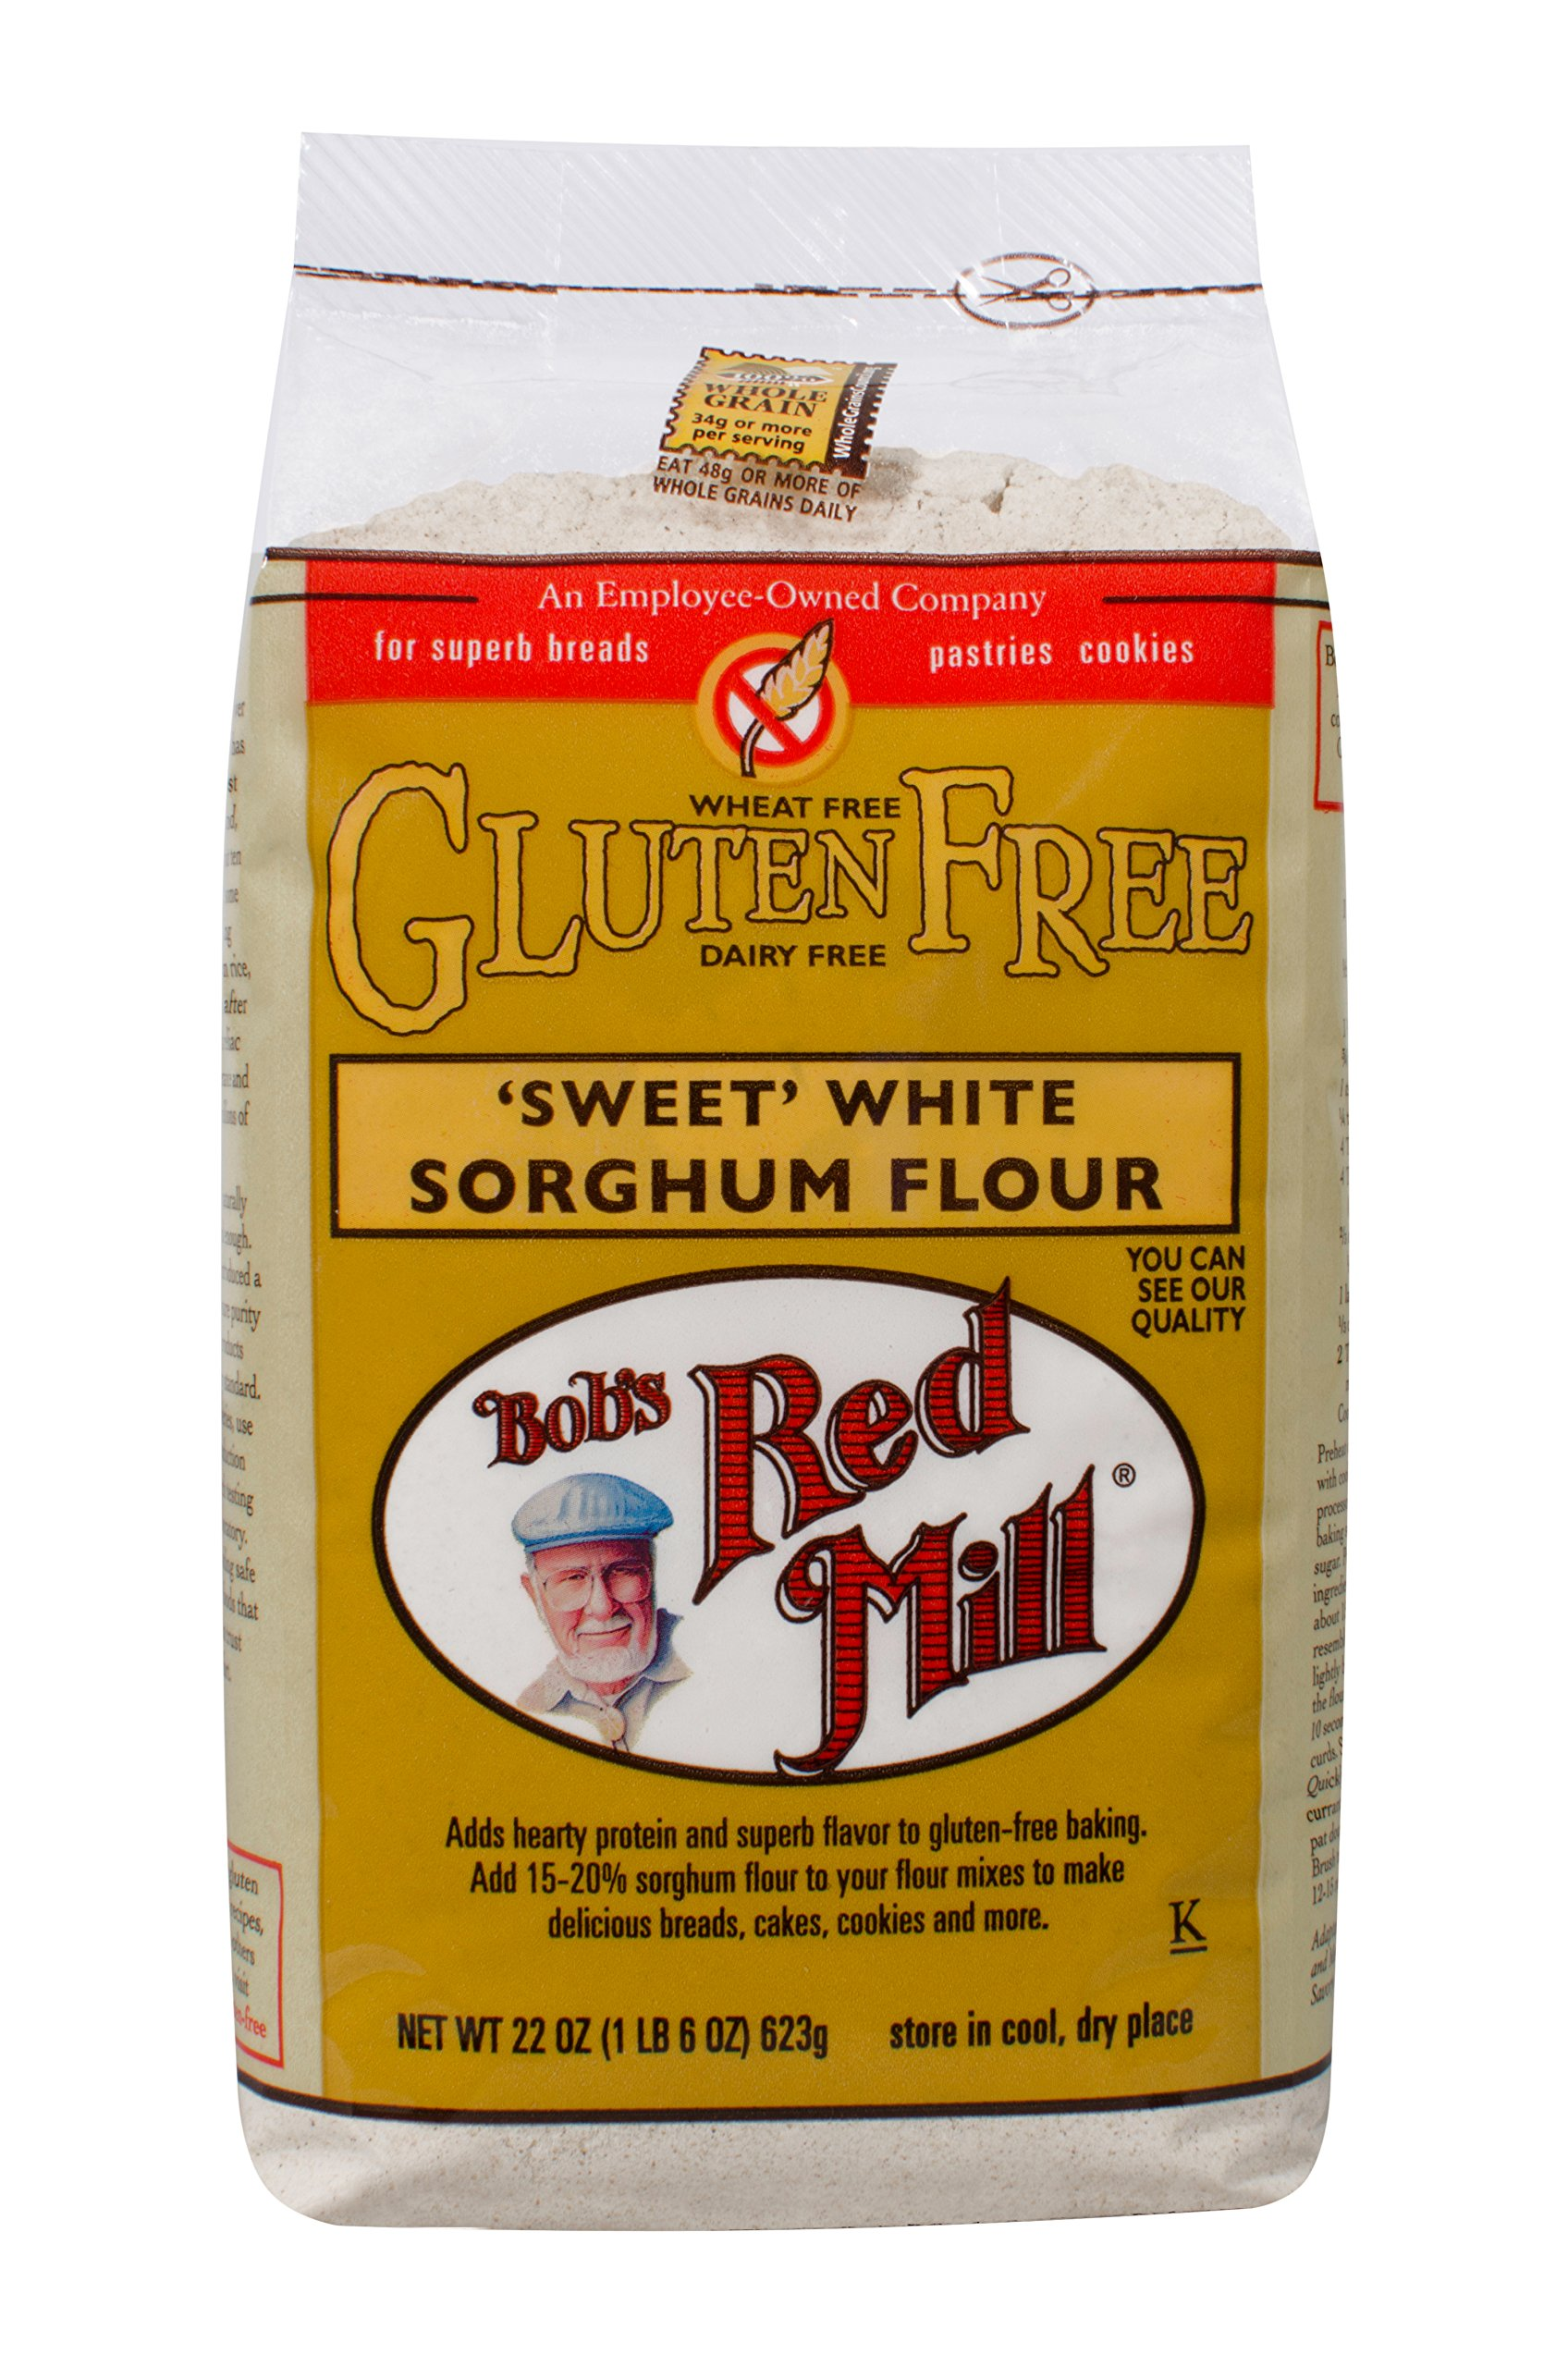 Bob's Red Mill Gluten Free Sweet White Sorghum Flour, 22-ounce by Bob's Red Mill